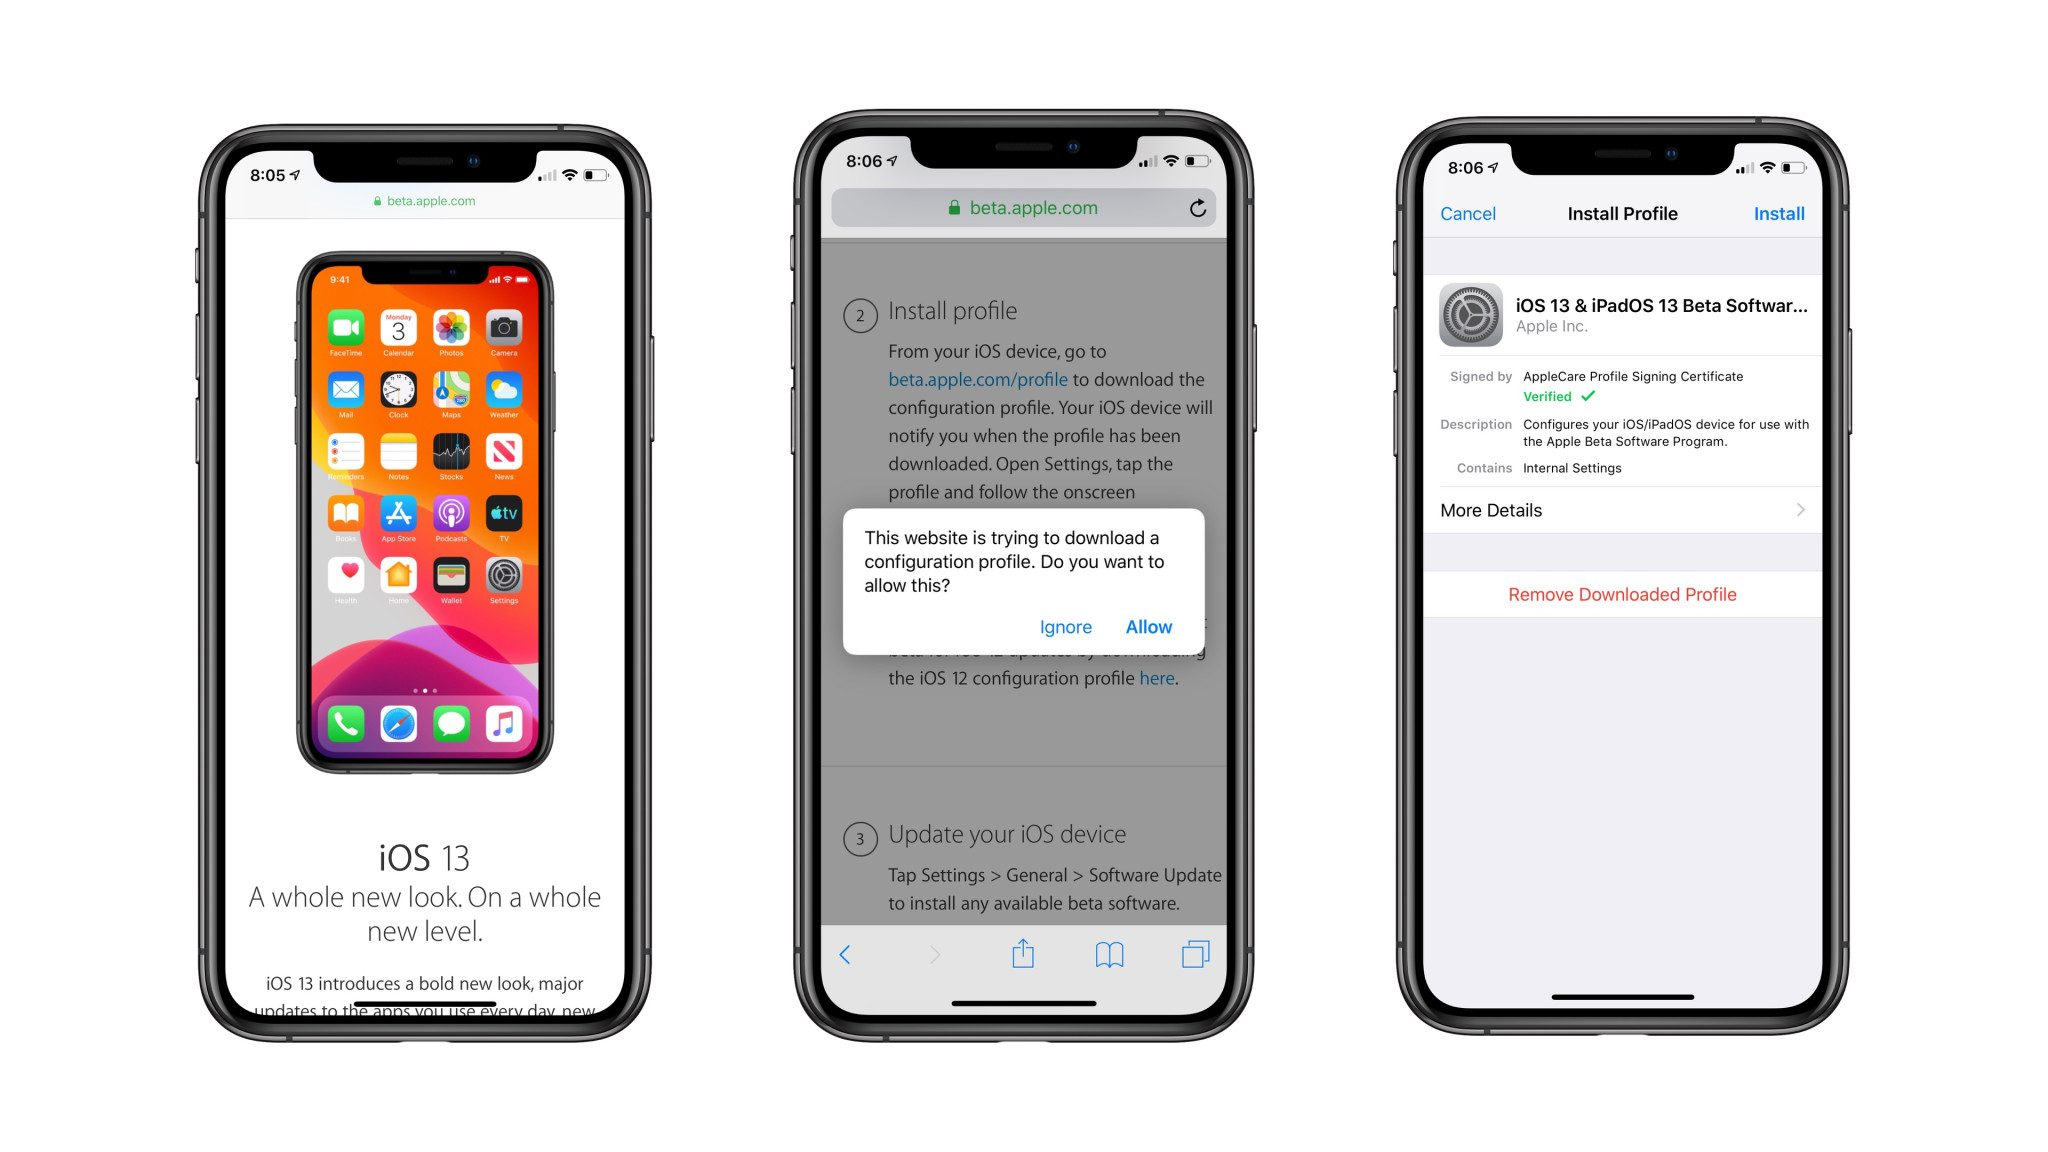 "<span href=""https://9to5mac.com/2020/05/04/ios-13-5-public-beta-install/"">como instalar el iOS 13.5 beta pública en su iPhone</a>"